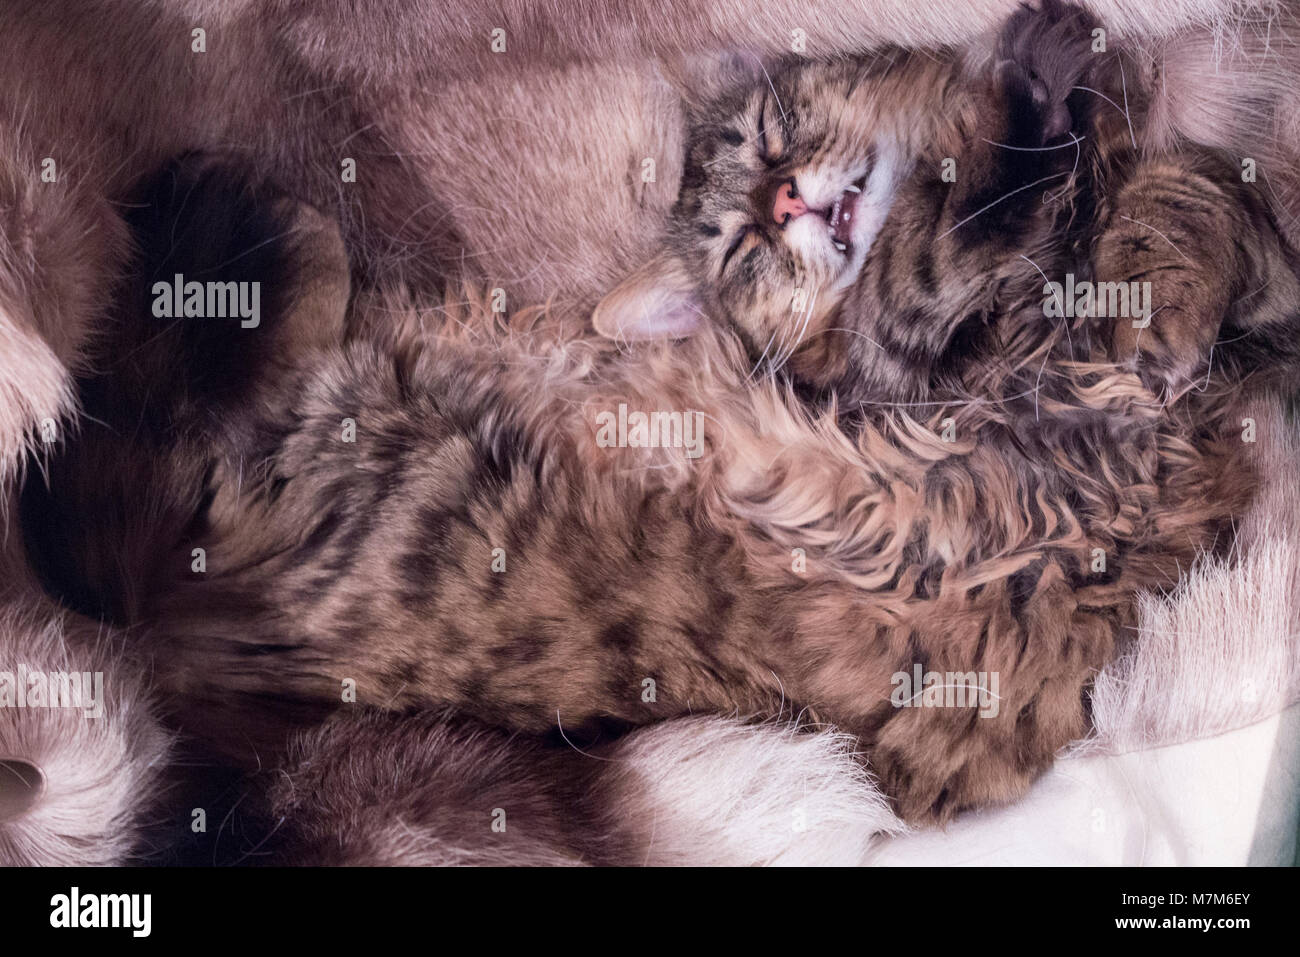 A munchkin cat lying on its back smiling at the camera - Stock Image